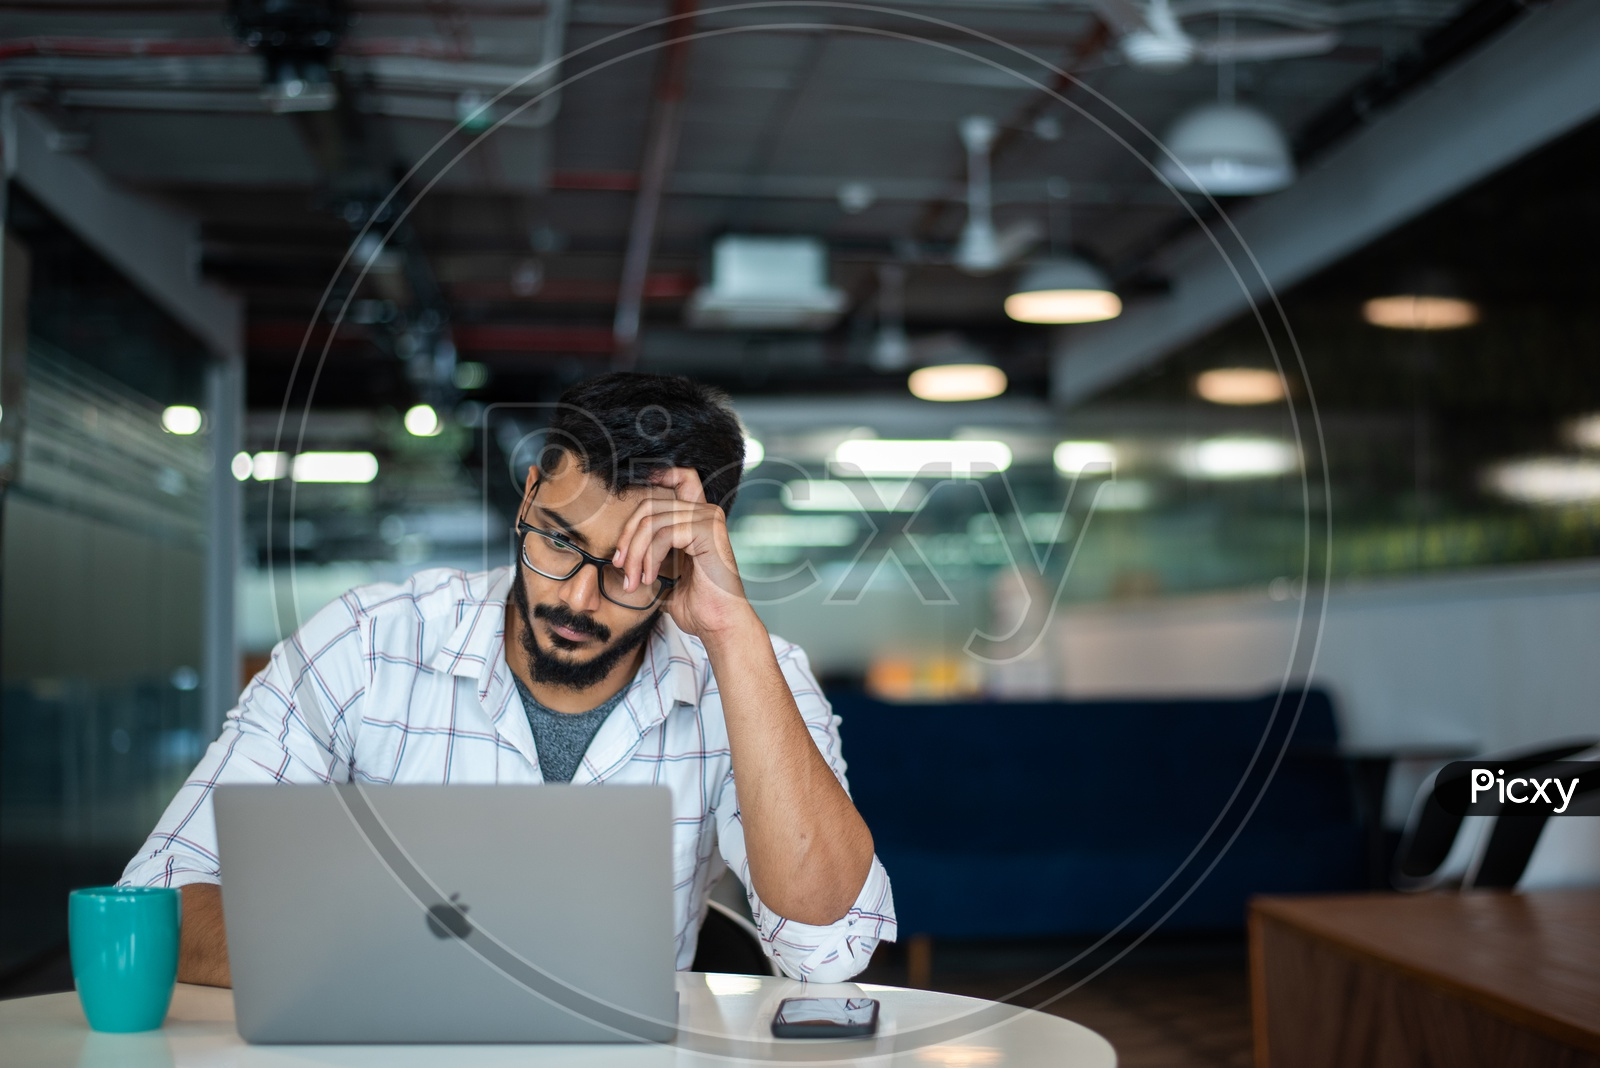 Frustrated Stressed Depressed Young Man Holding Head in Hands Working on Laptop  in Office Work Space